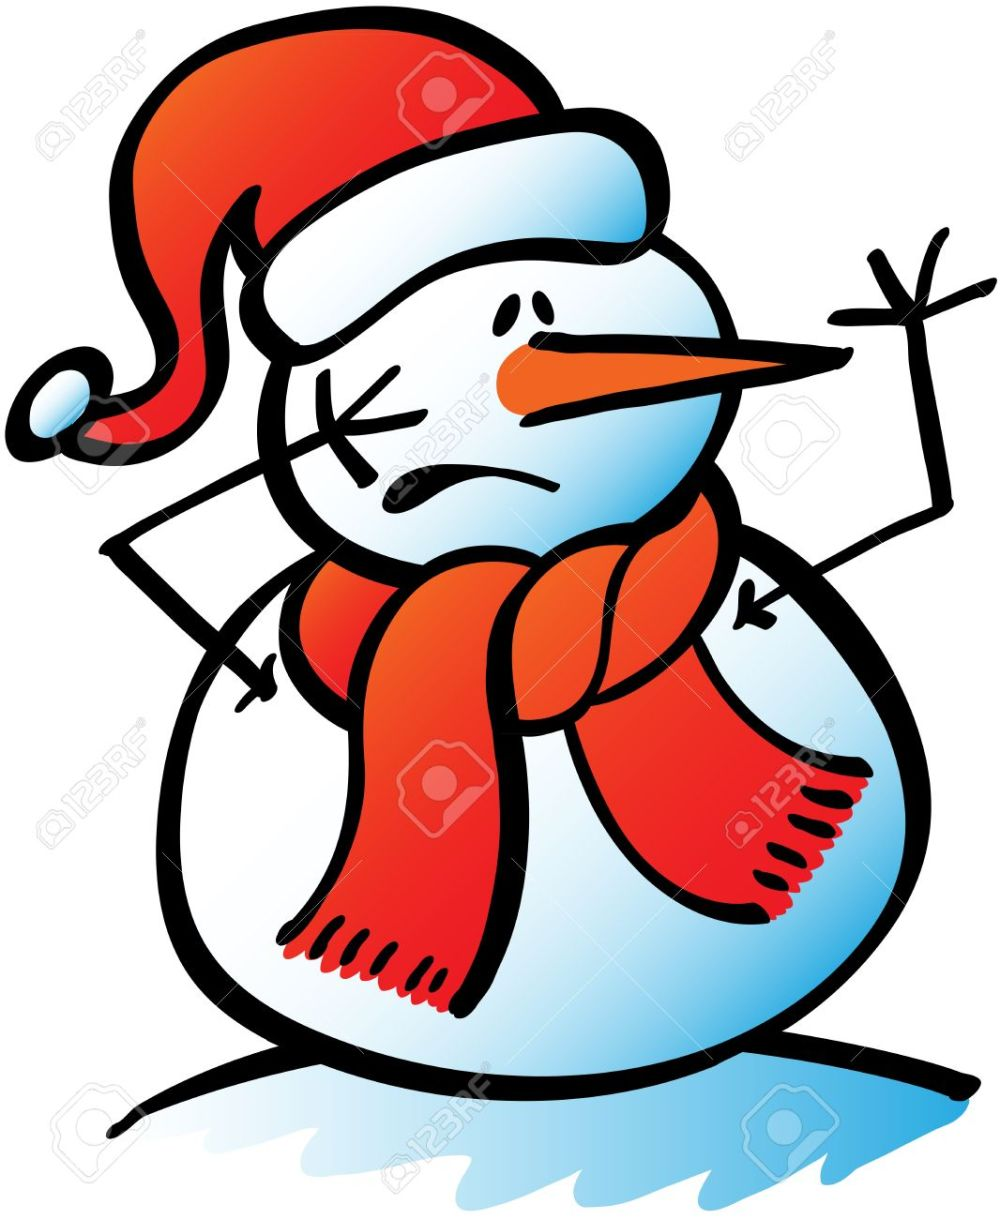 medium resolution of funny christmas snowman wearing santa hat and red scarf while trying to get attention by rising